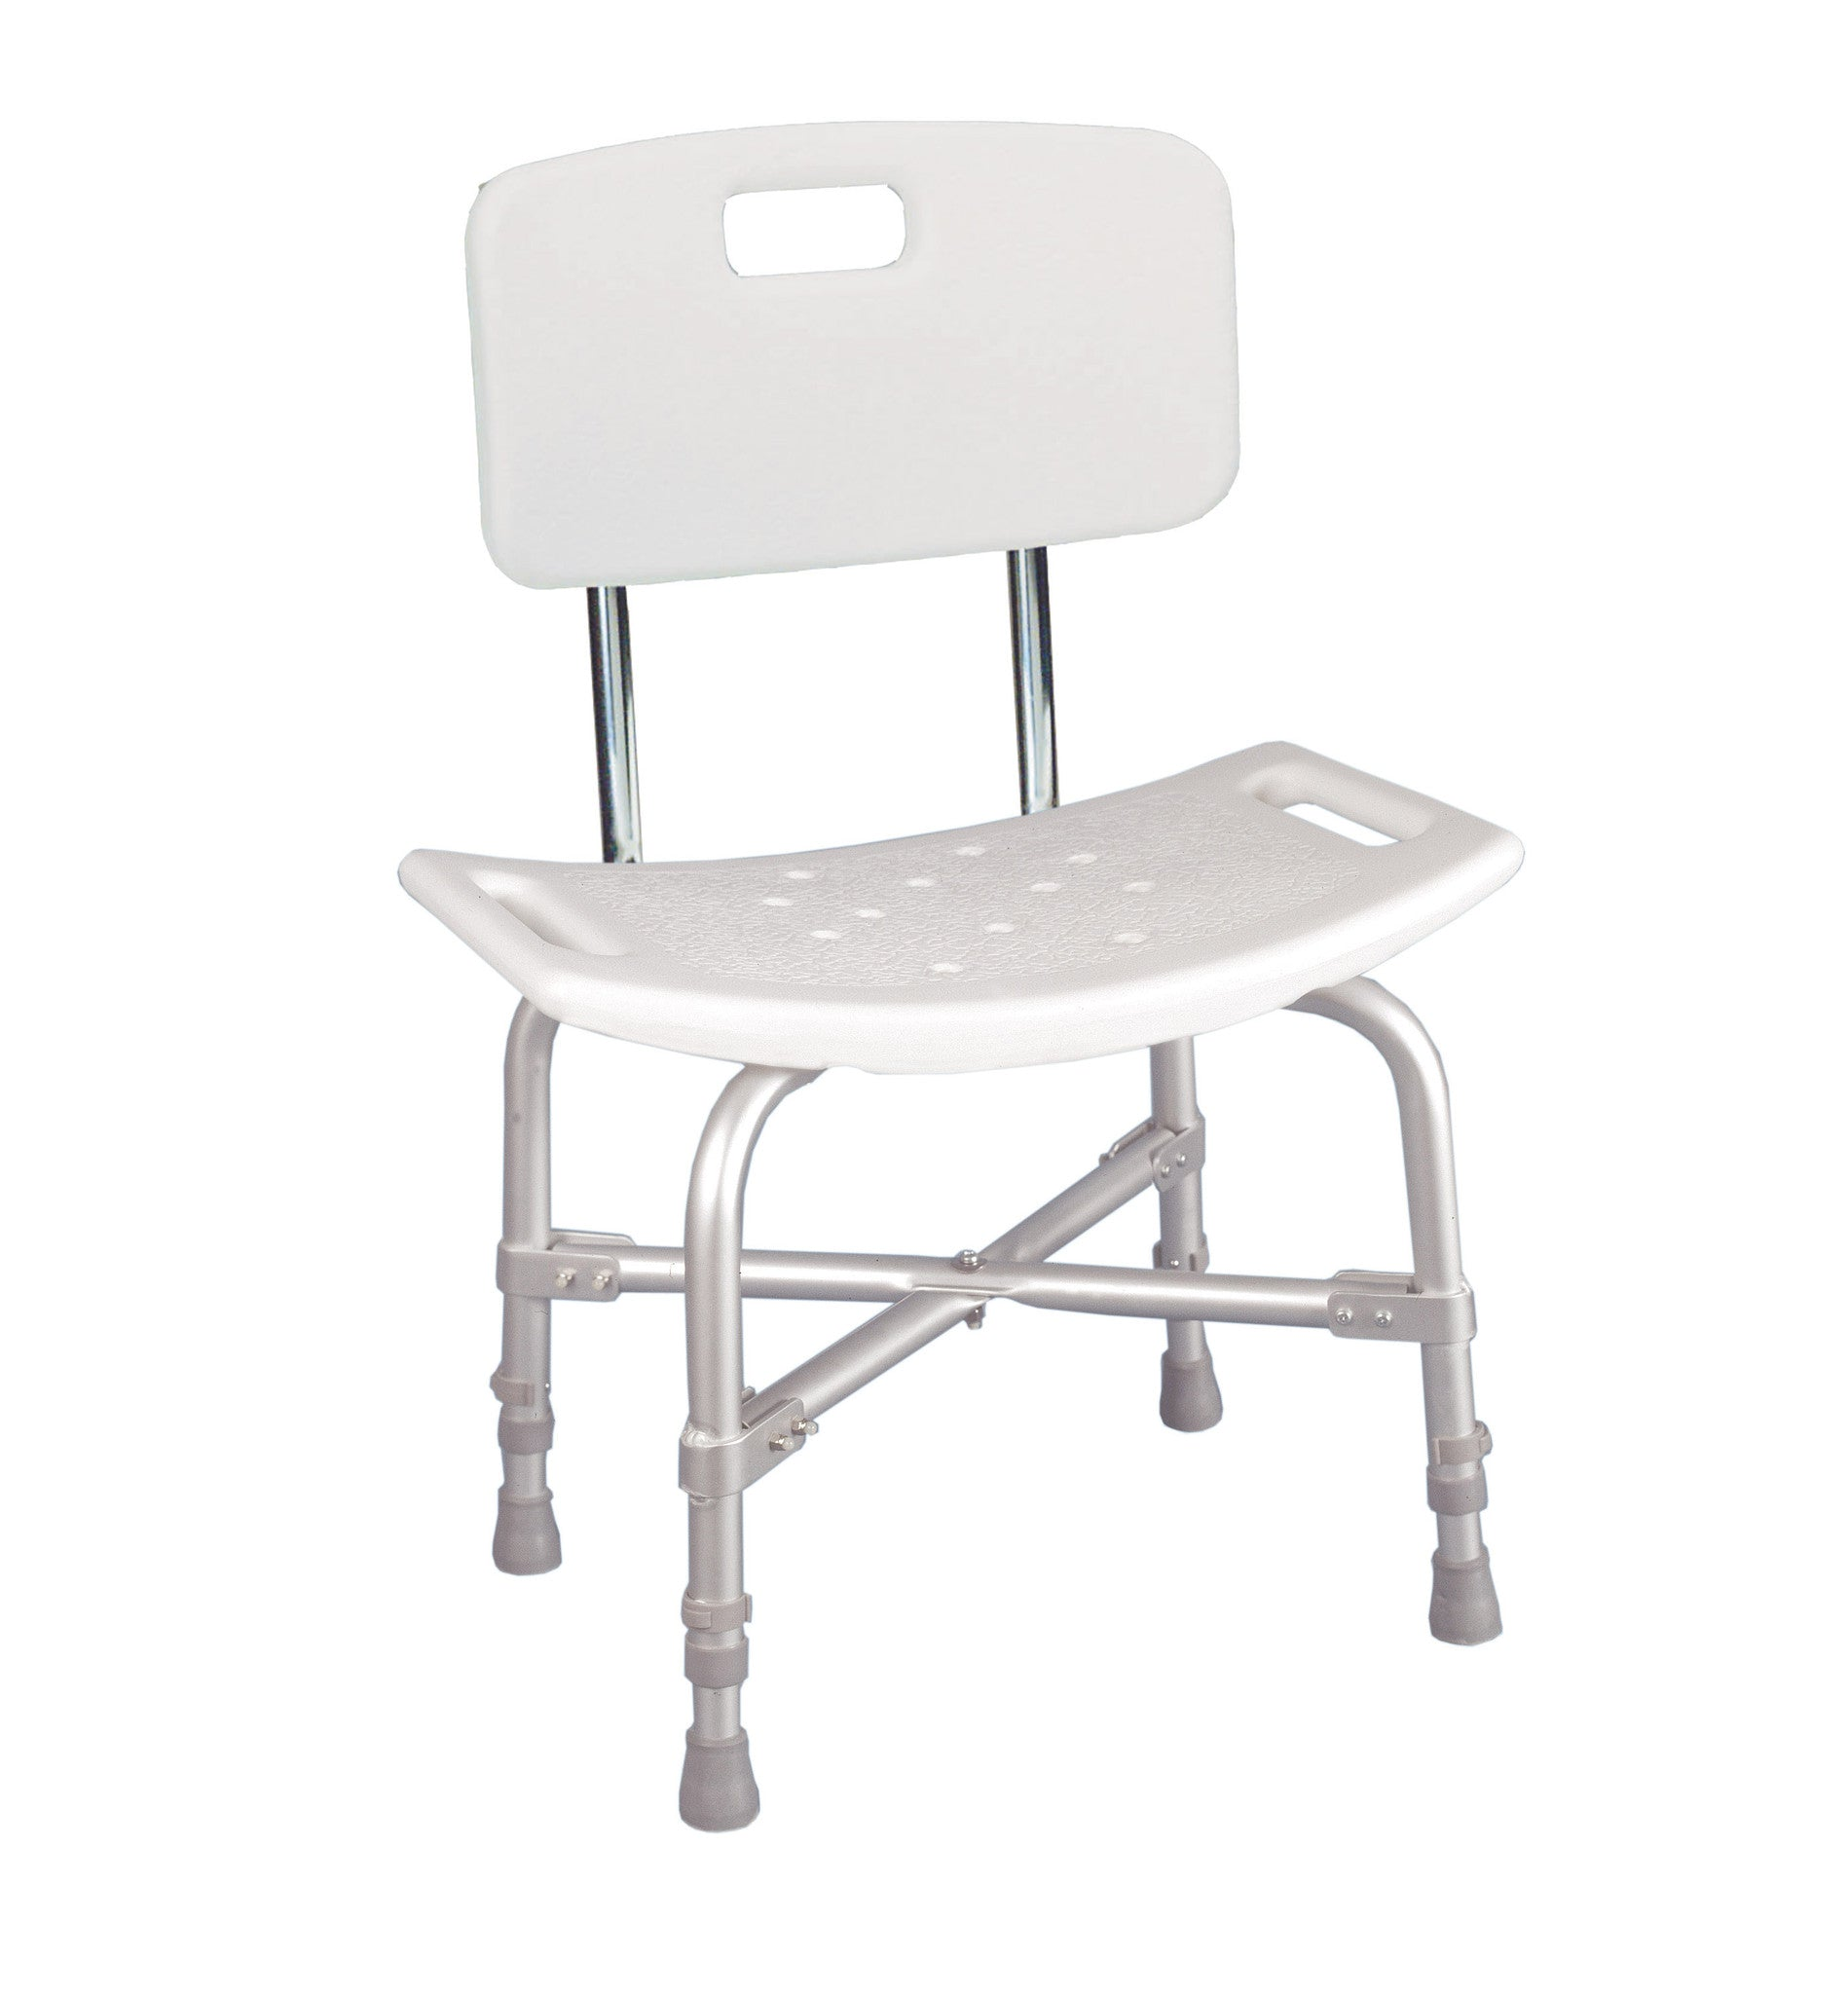 Bariatric Heavy Duty Bath Bench With Backrest By Drive